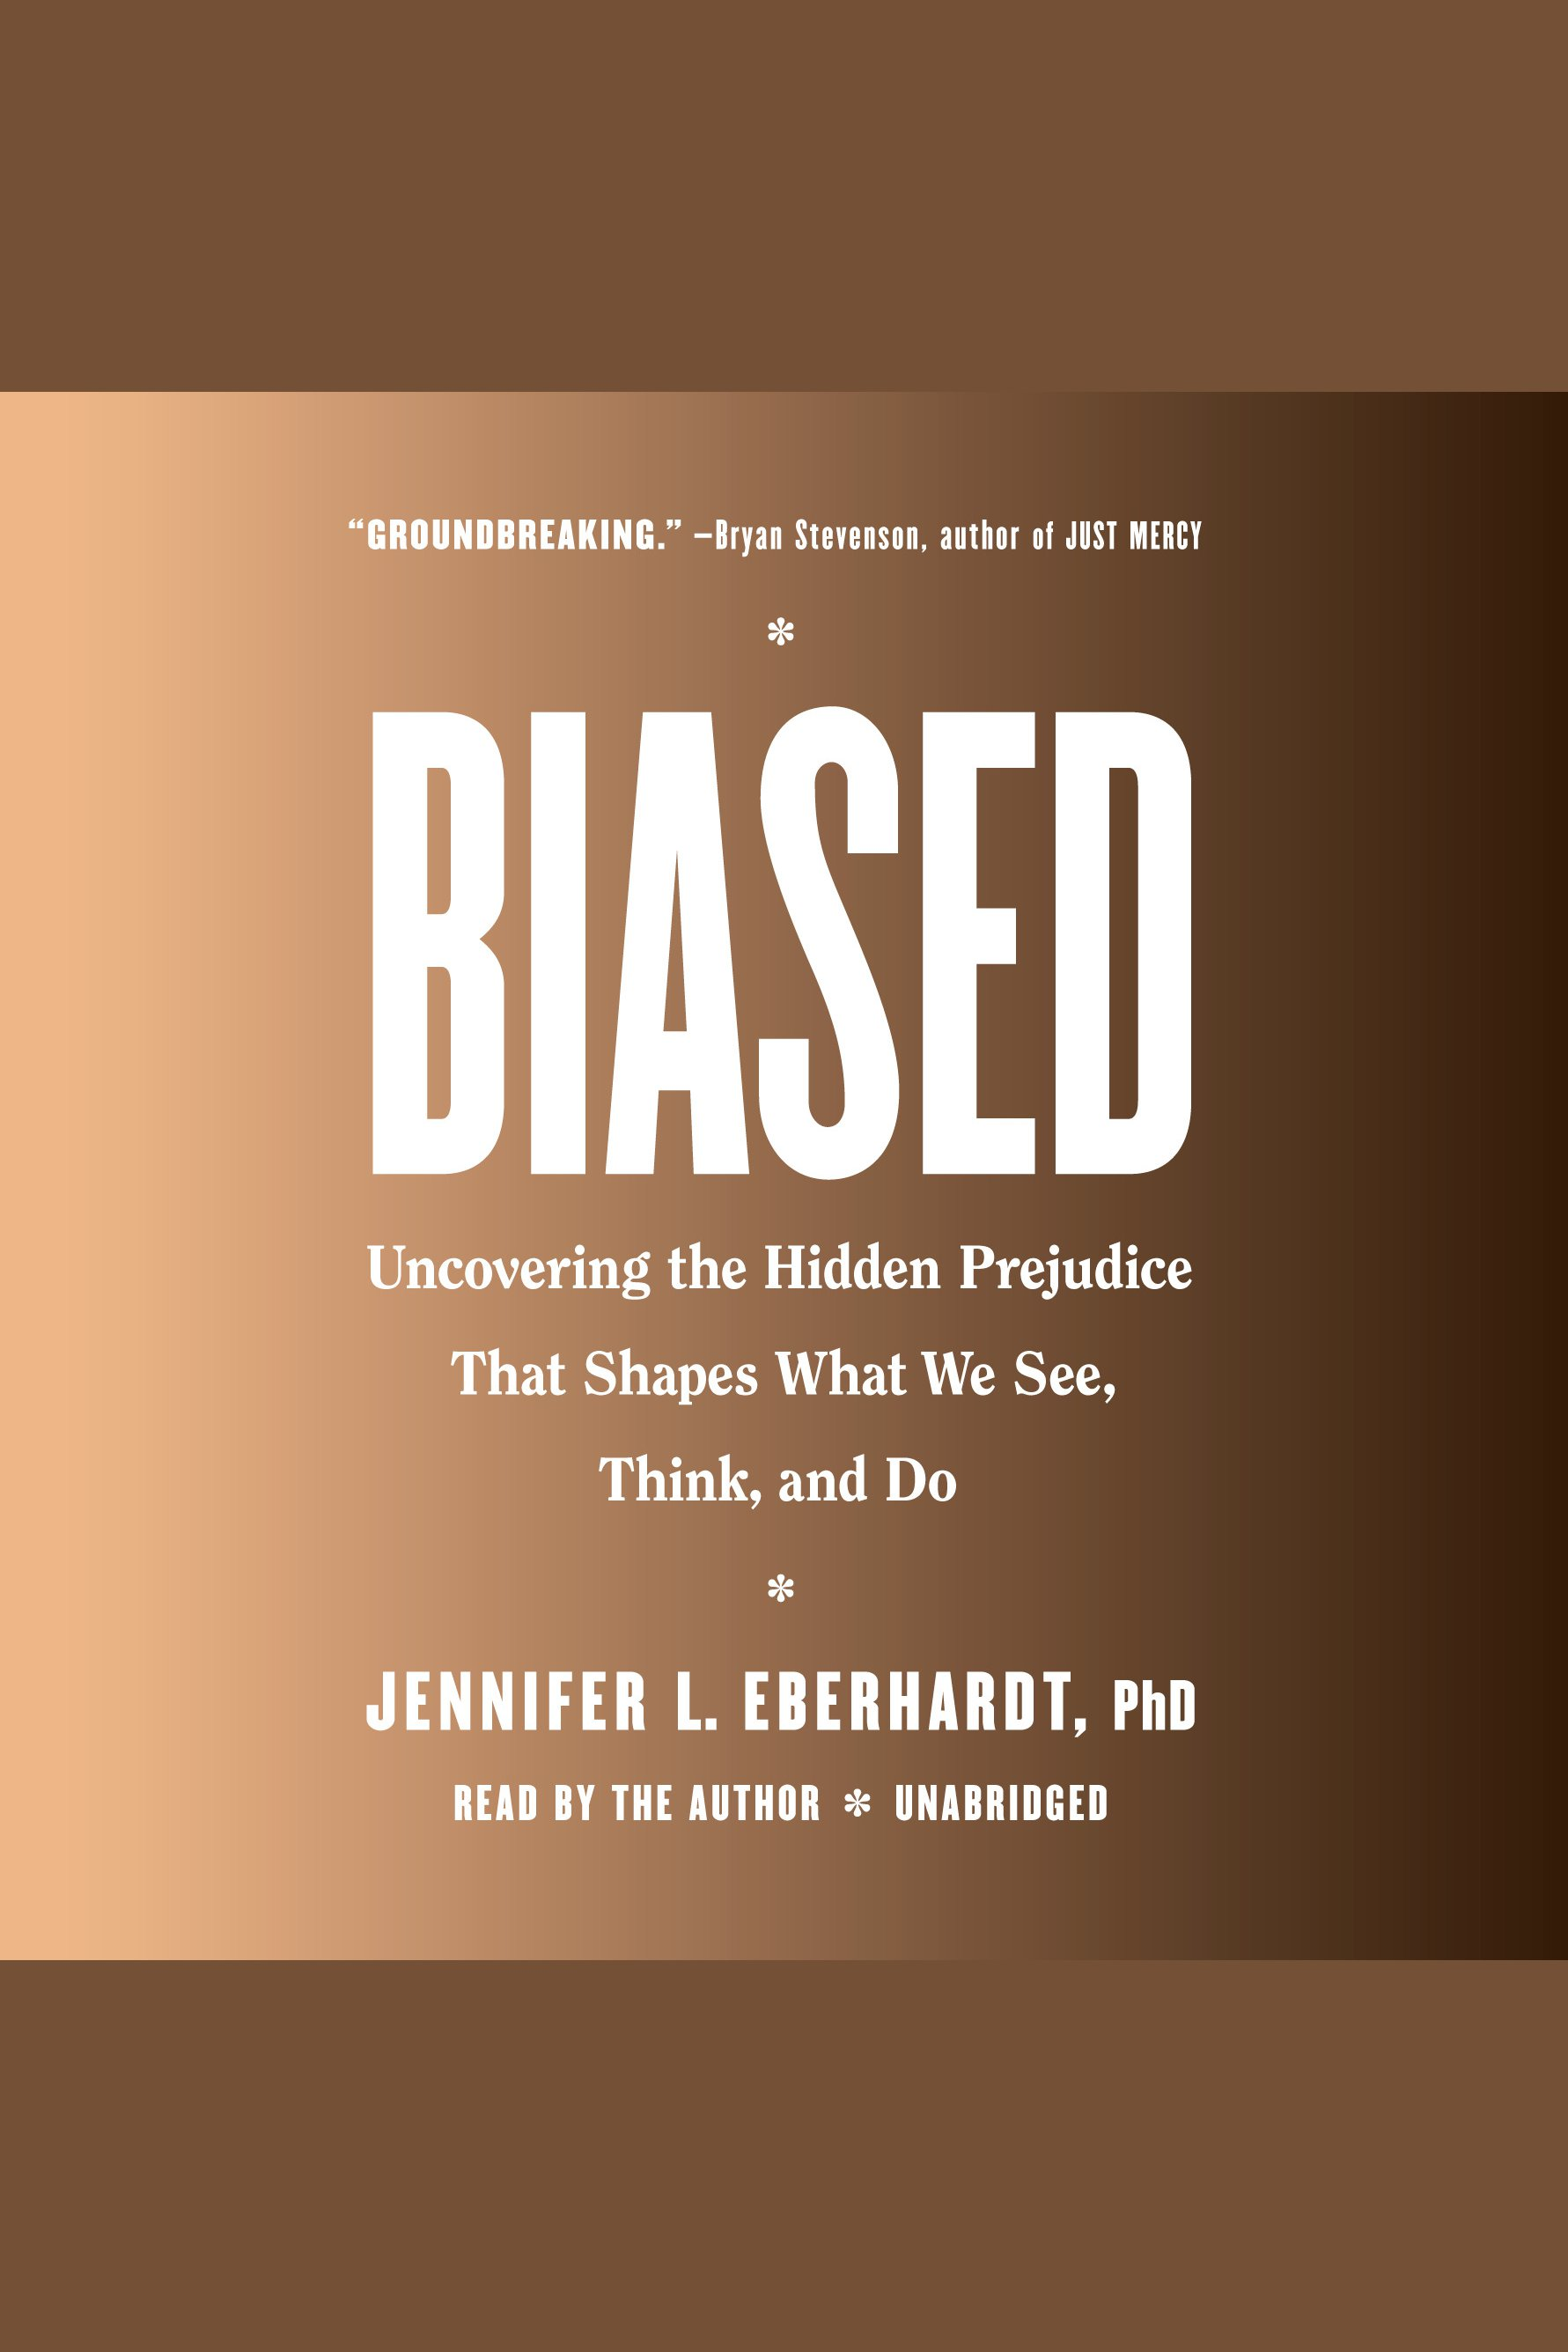 Biased Uncovering the Hidden Prejudice That Shapes What We See, Think, and Do